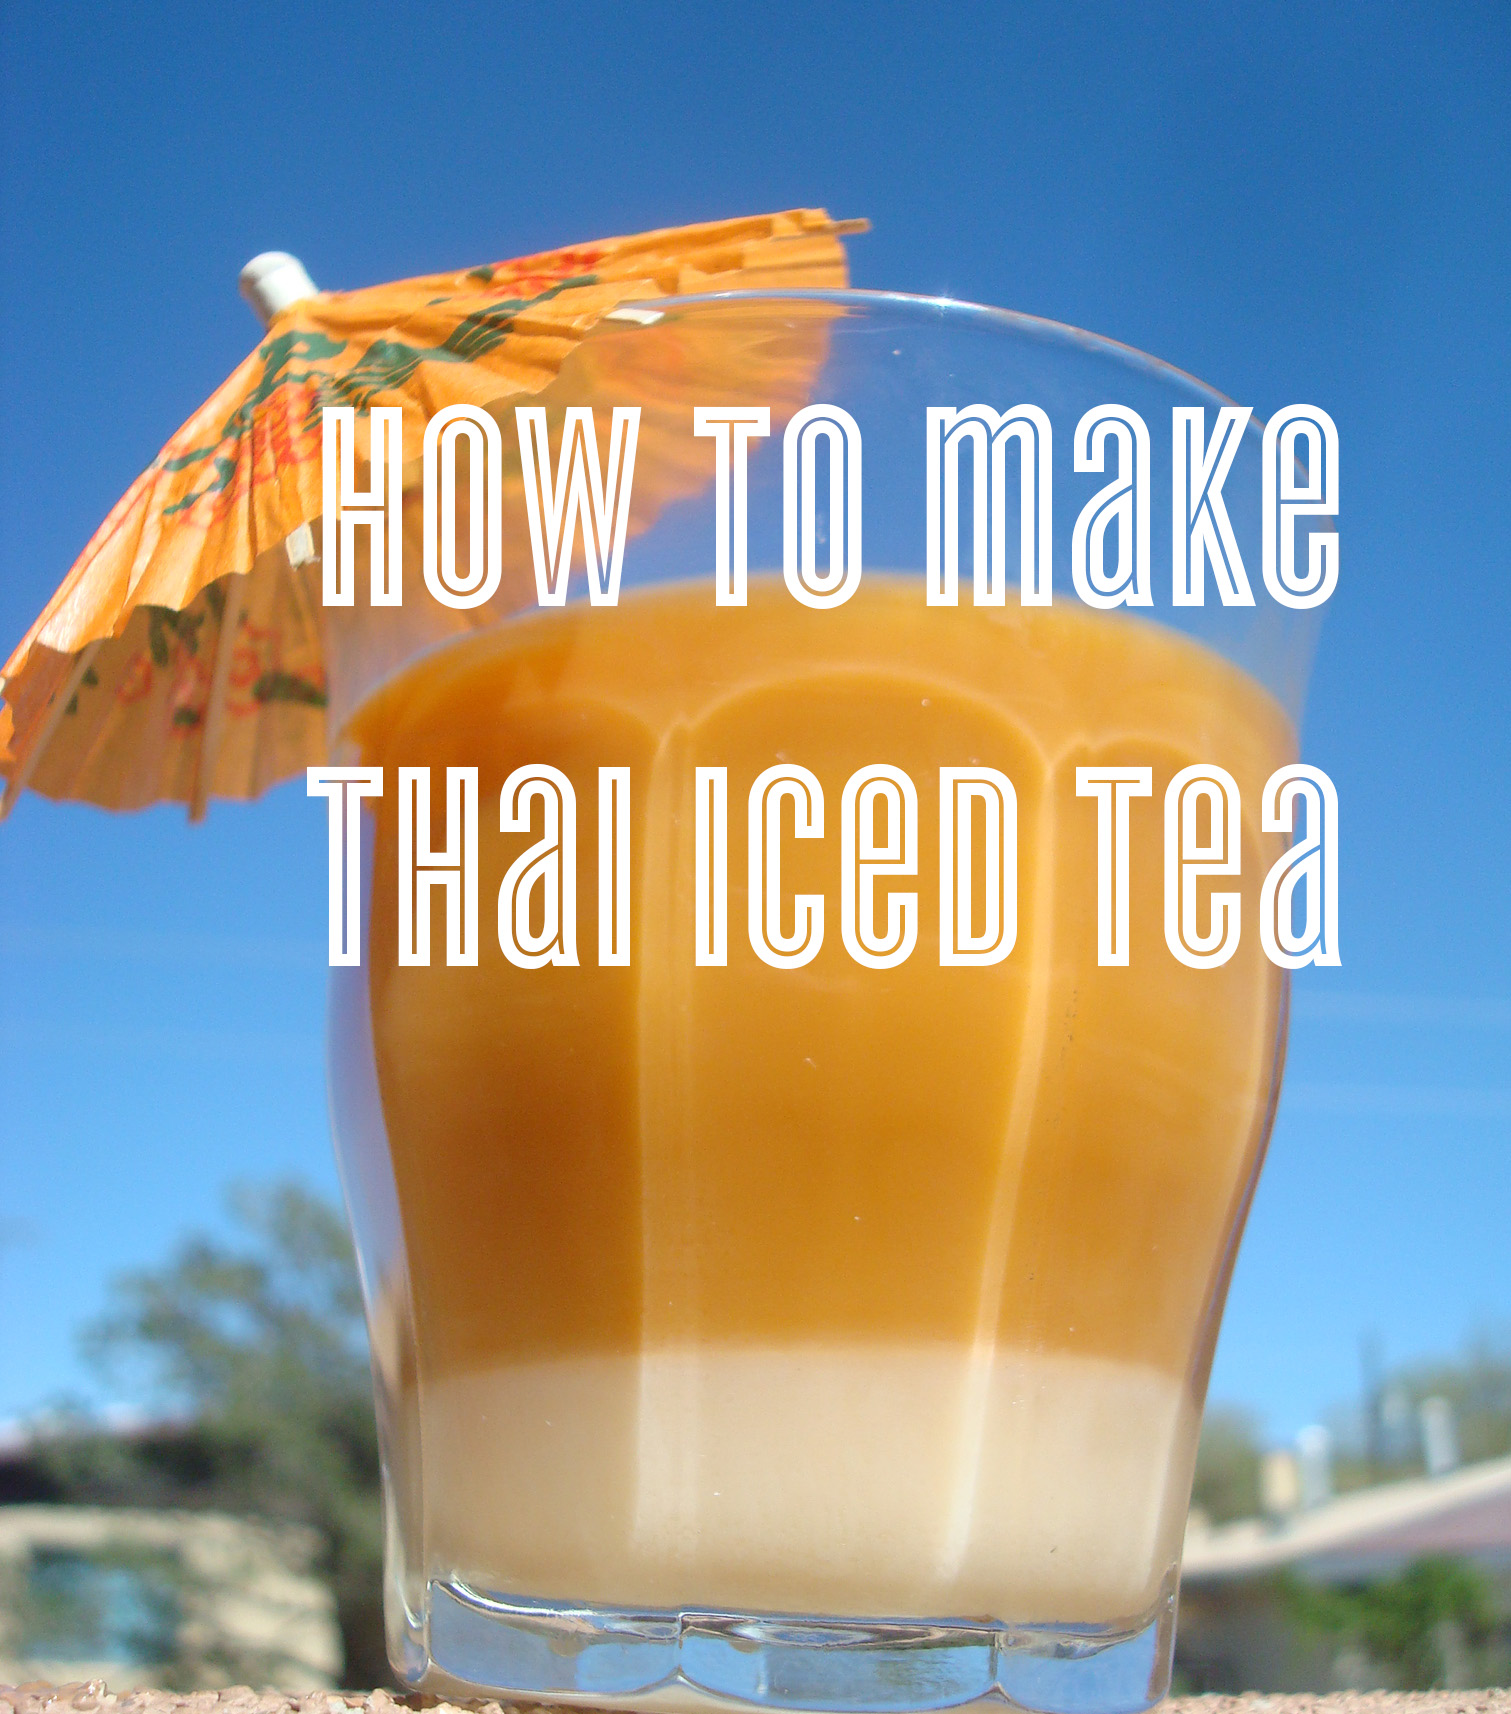 How to Make Thai Iced Tea